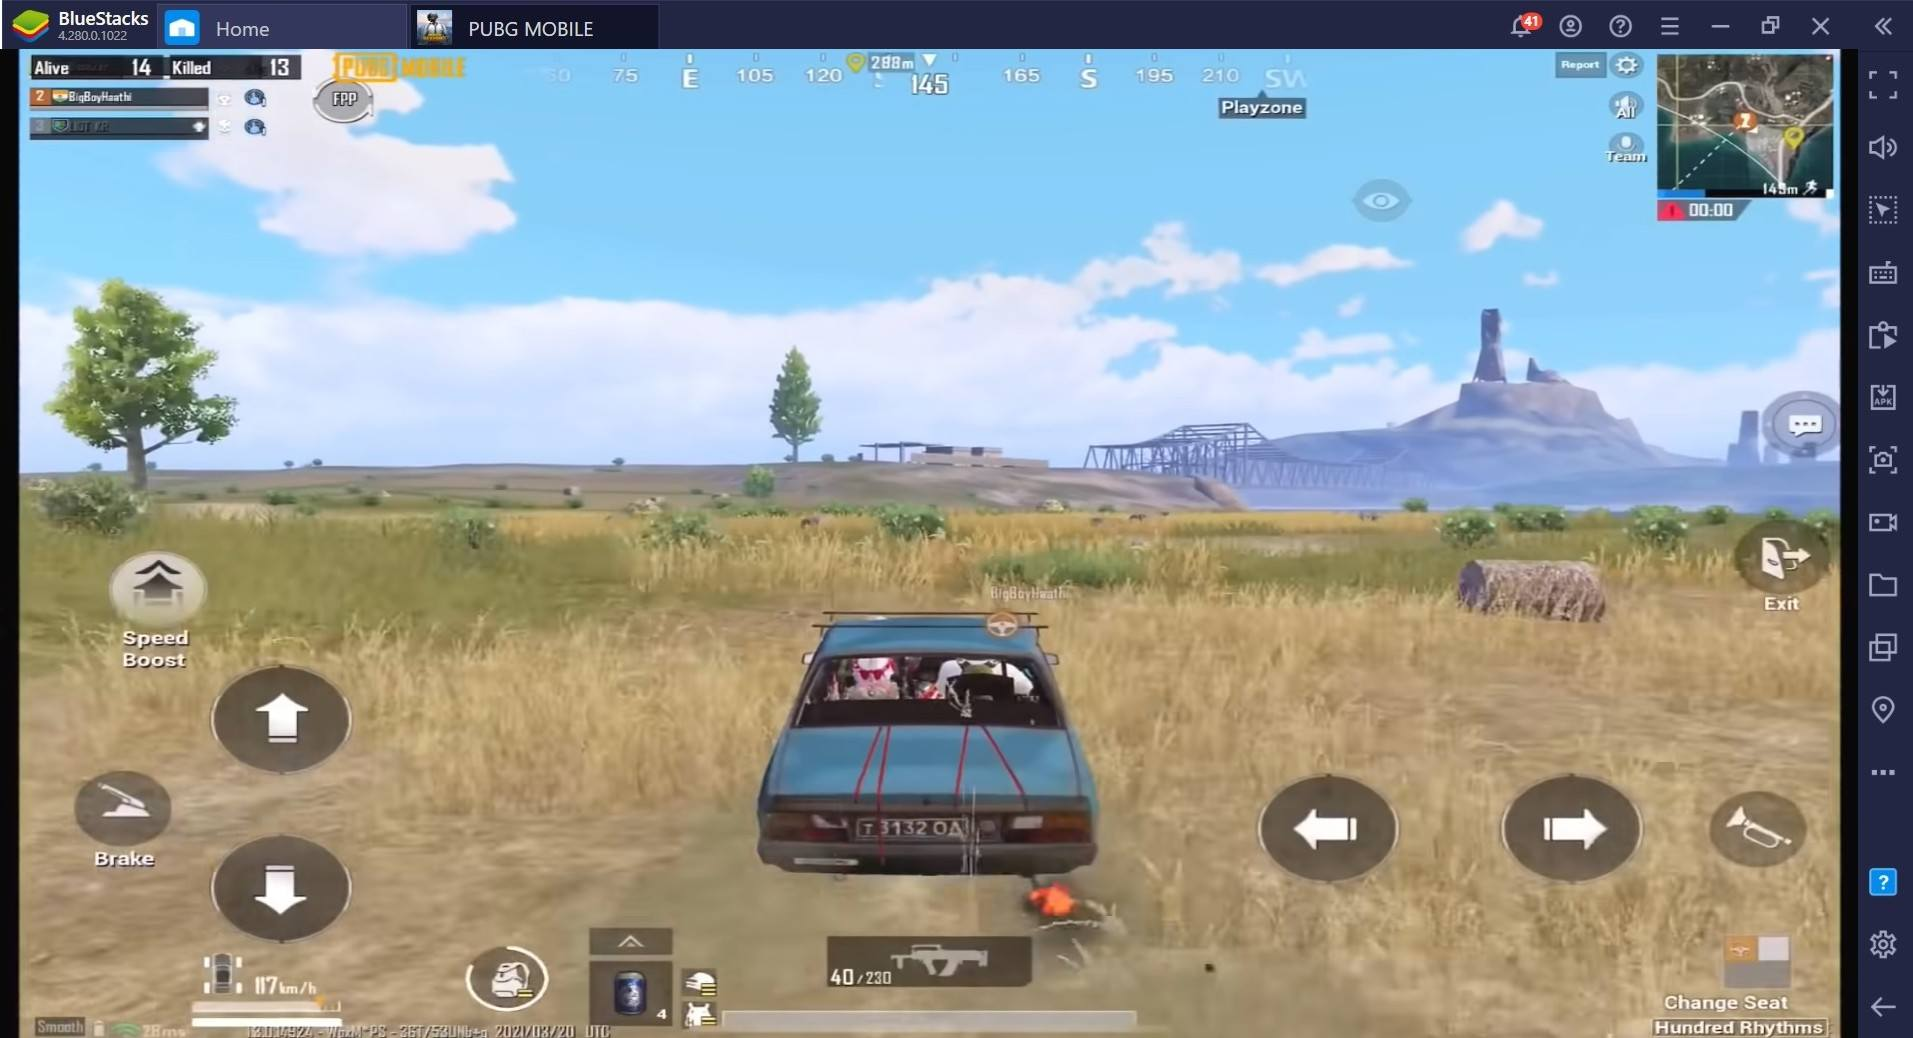 PUBG Mobile Weapon Guide for SKS, Mini-14, M416 with BR Tips